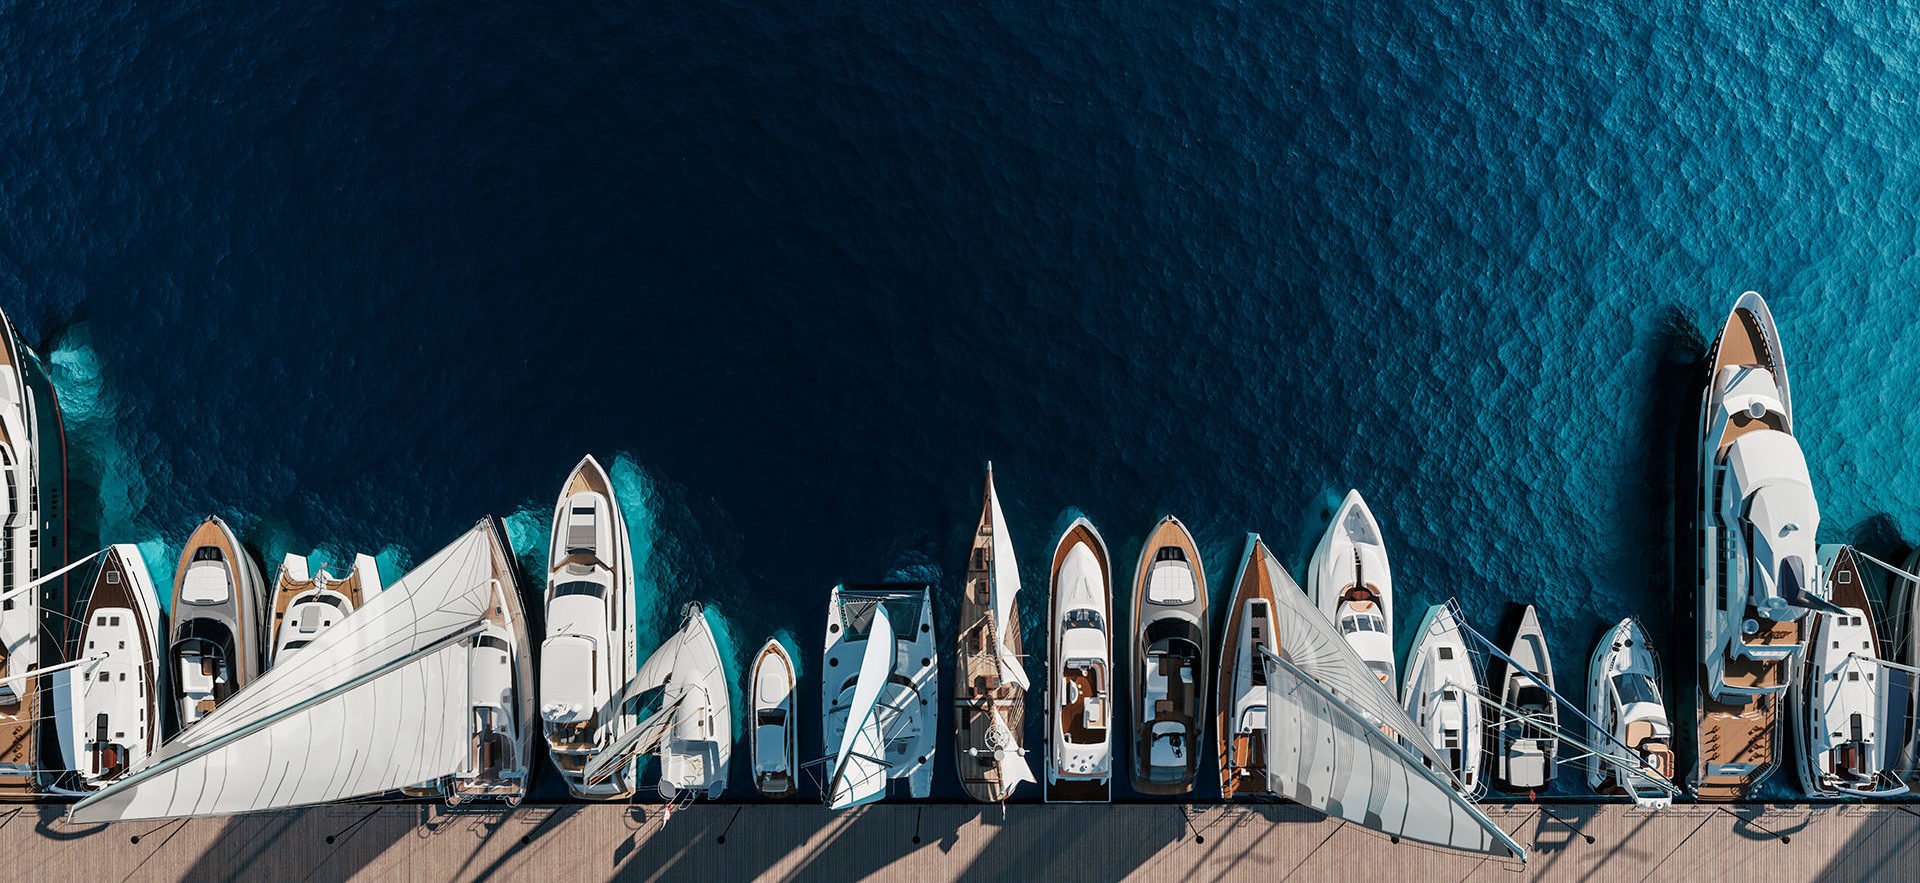 Optimal cleaning and maintenance for boats